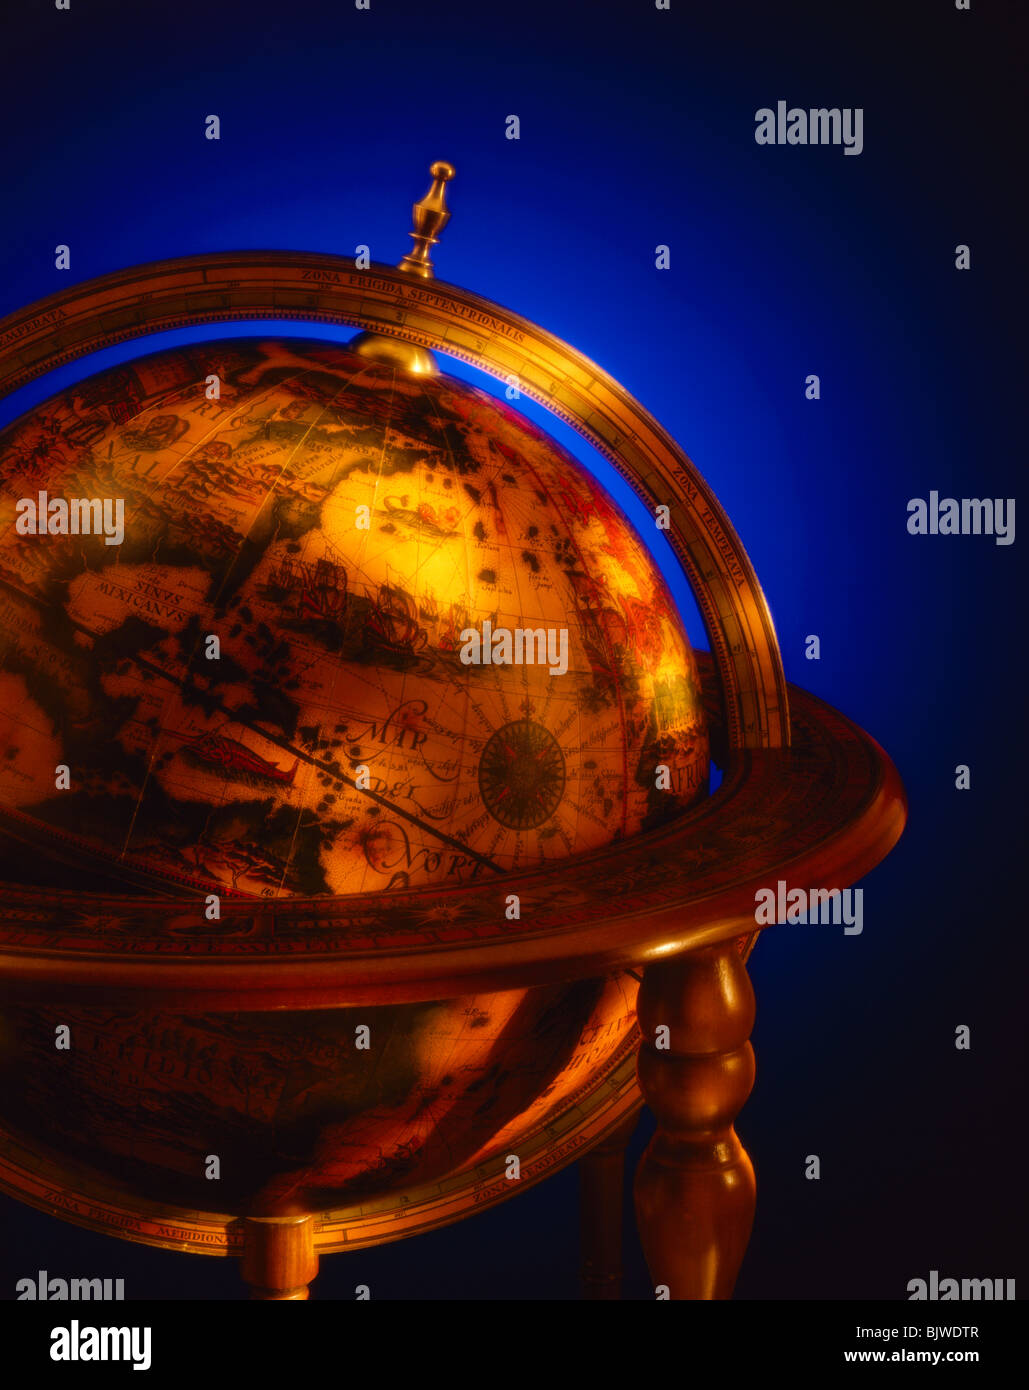 Antique Globe - Stock Image